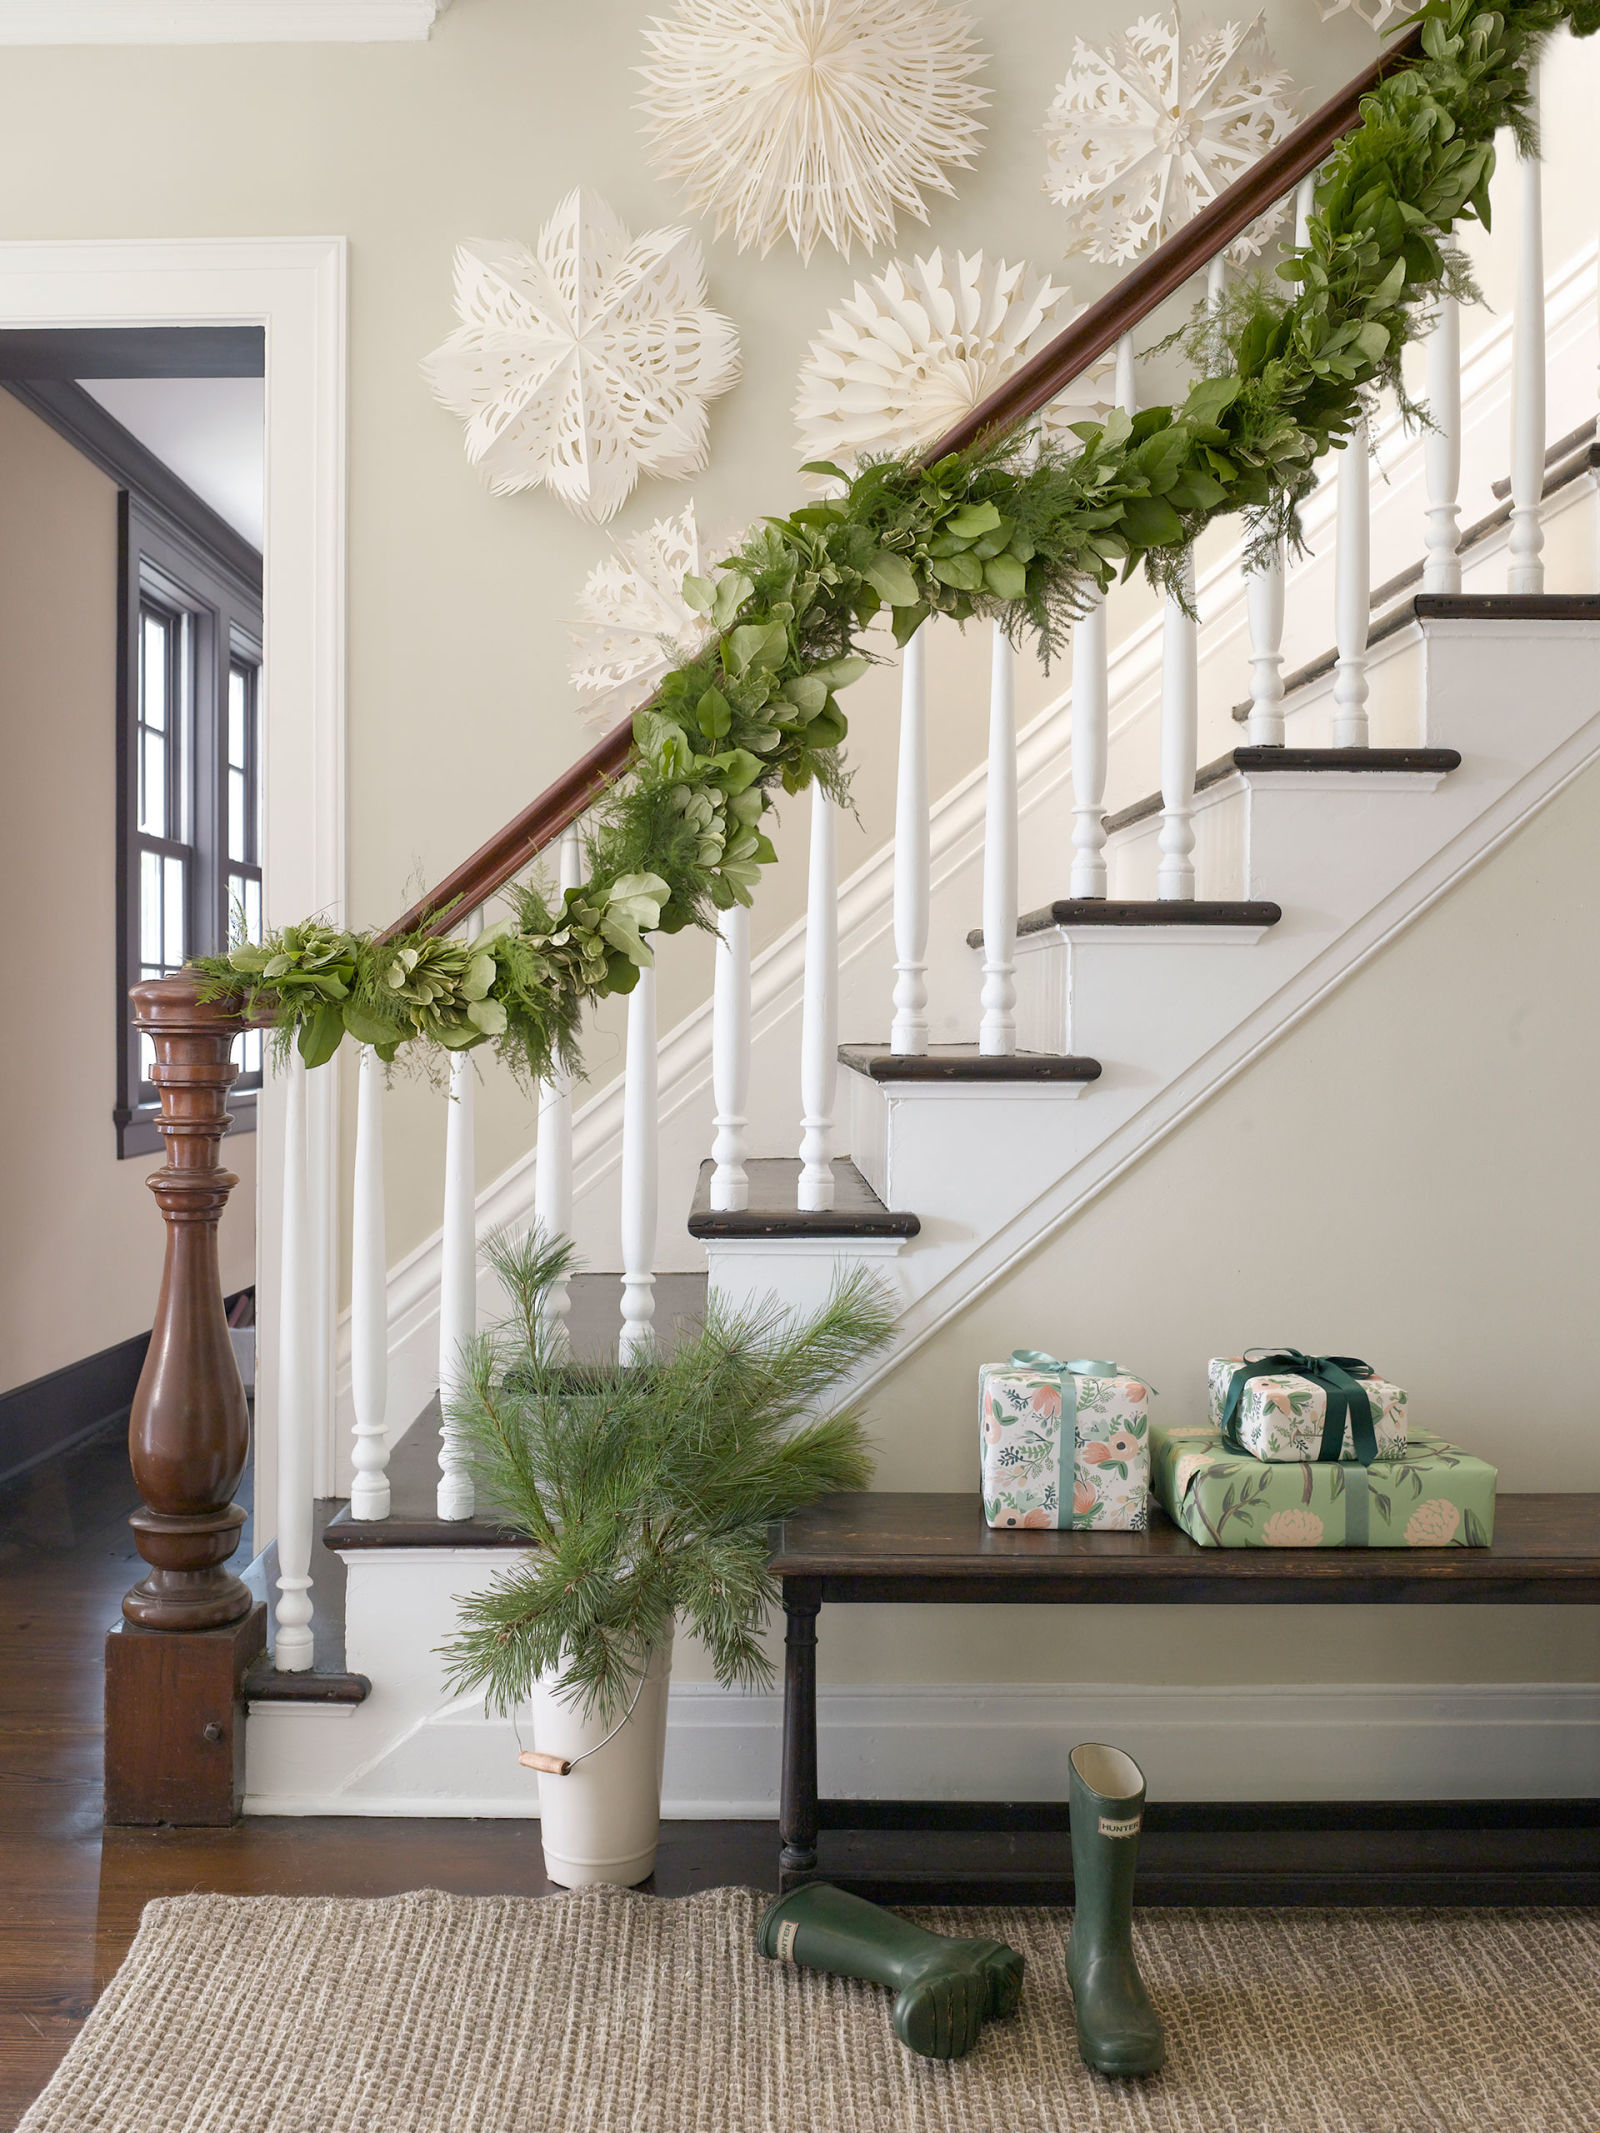 Top 40 ideal ways to decorate with garlands this christmas - Christmas decorations for stair rail ...